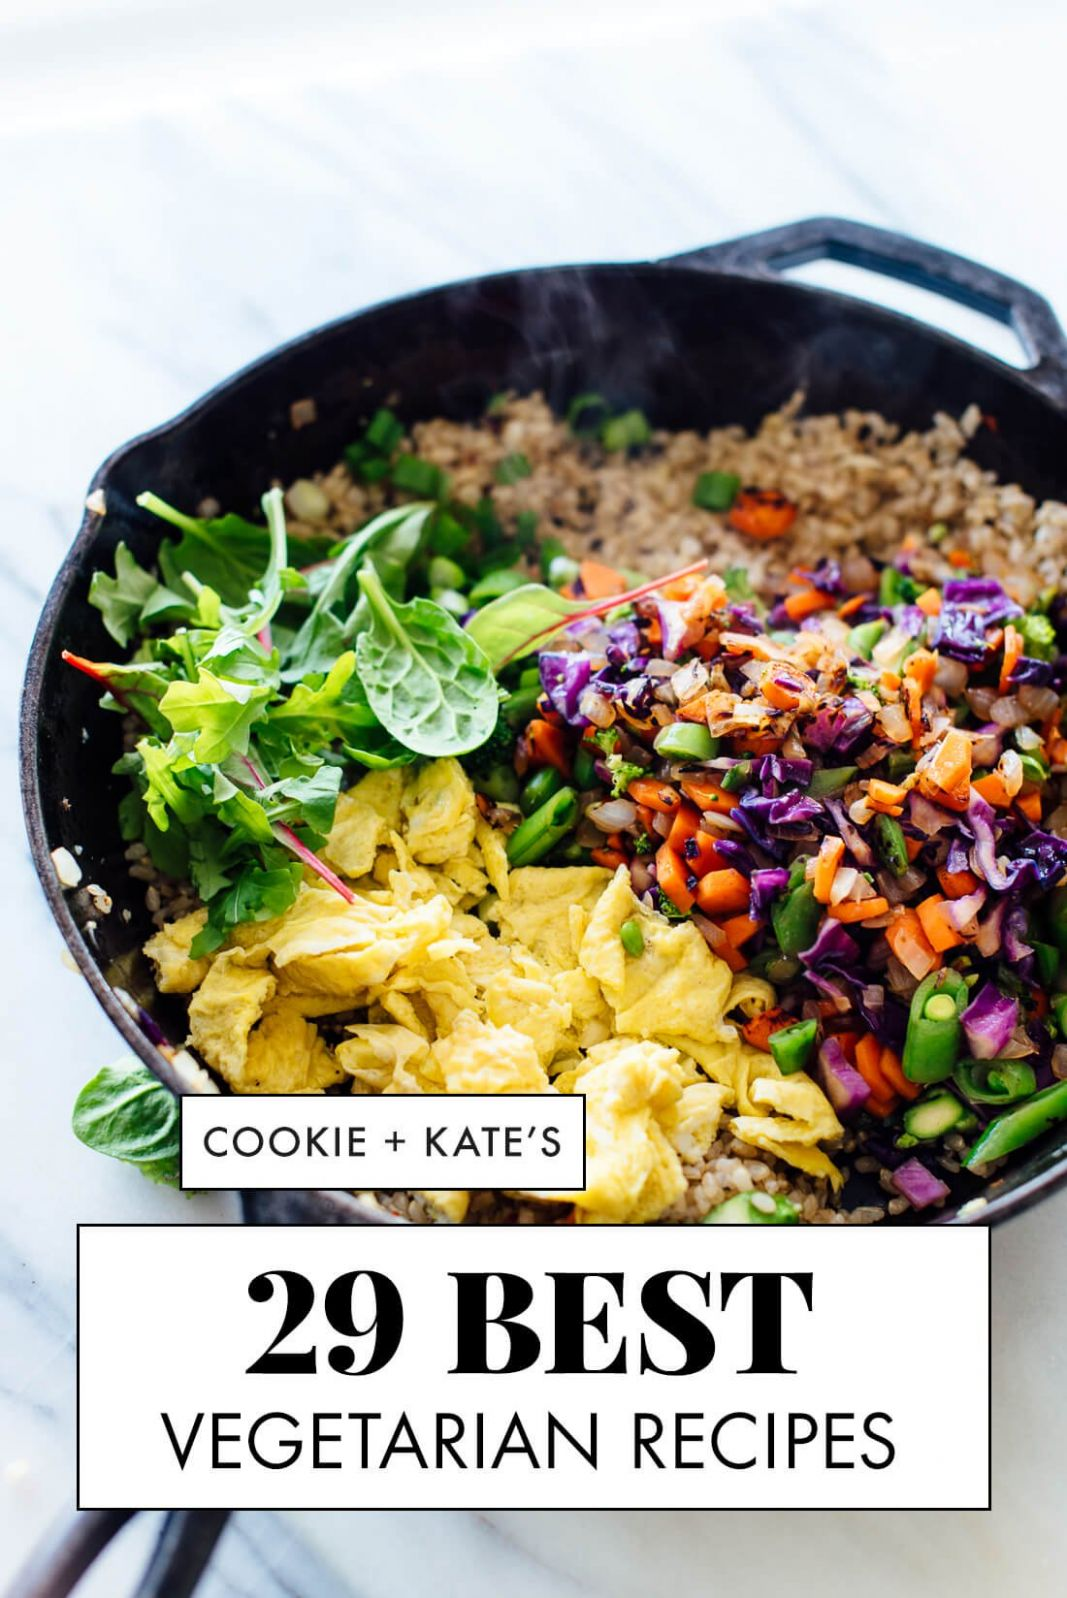 11 Best Vegetarian Recipes - Cookie and Kate - Recipes Vegetarian Meals